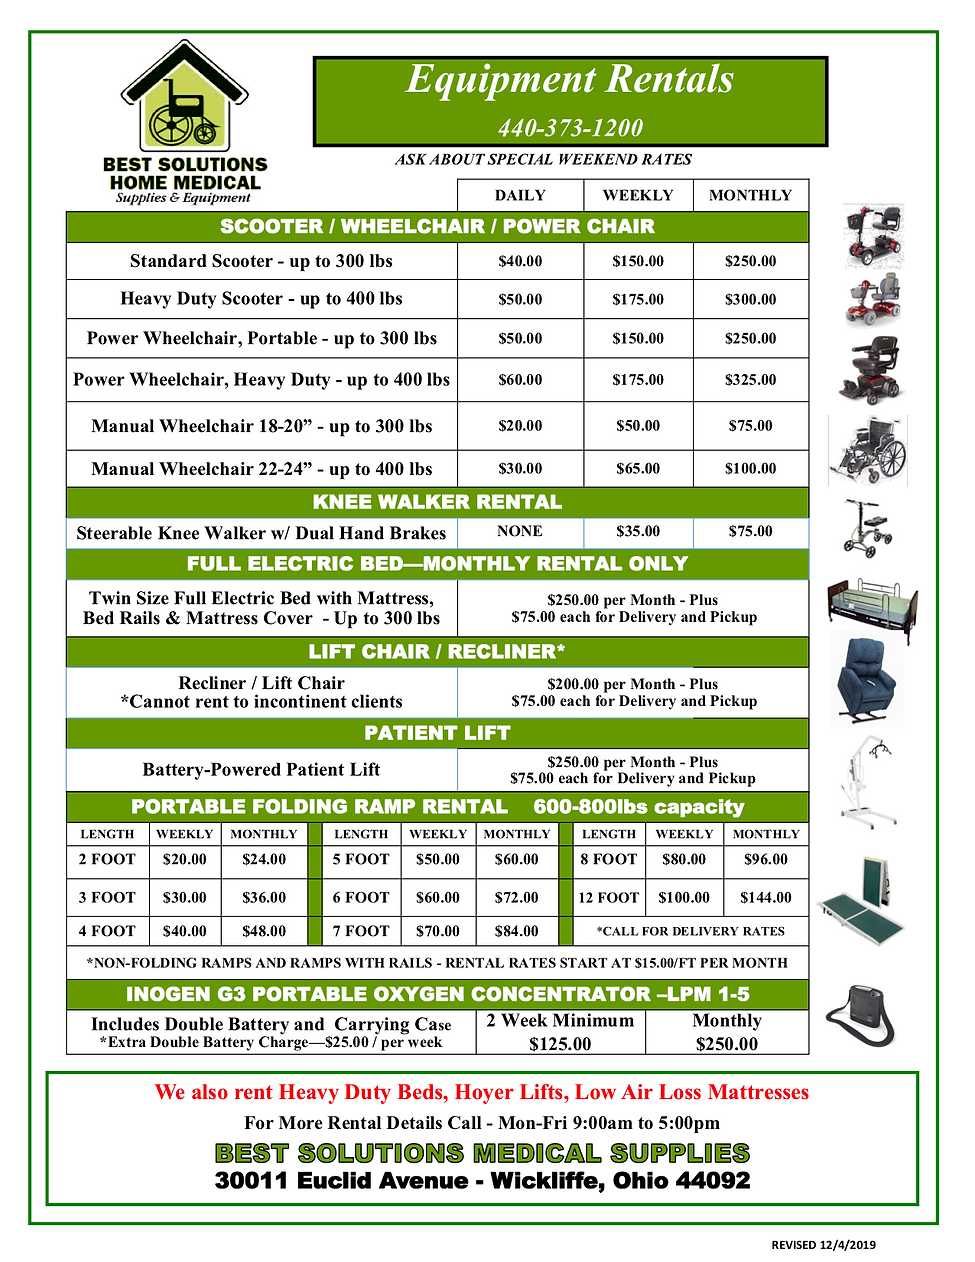 rental brochure - 12-4-2019 revisionpng.